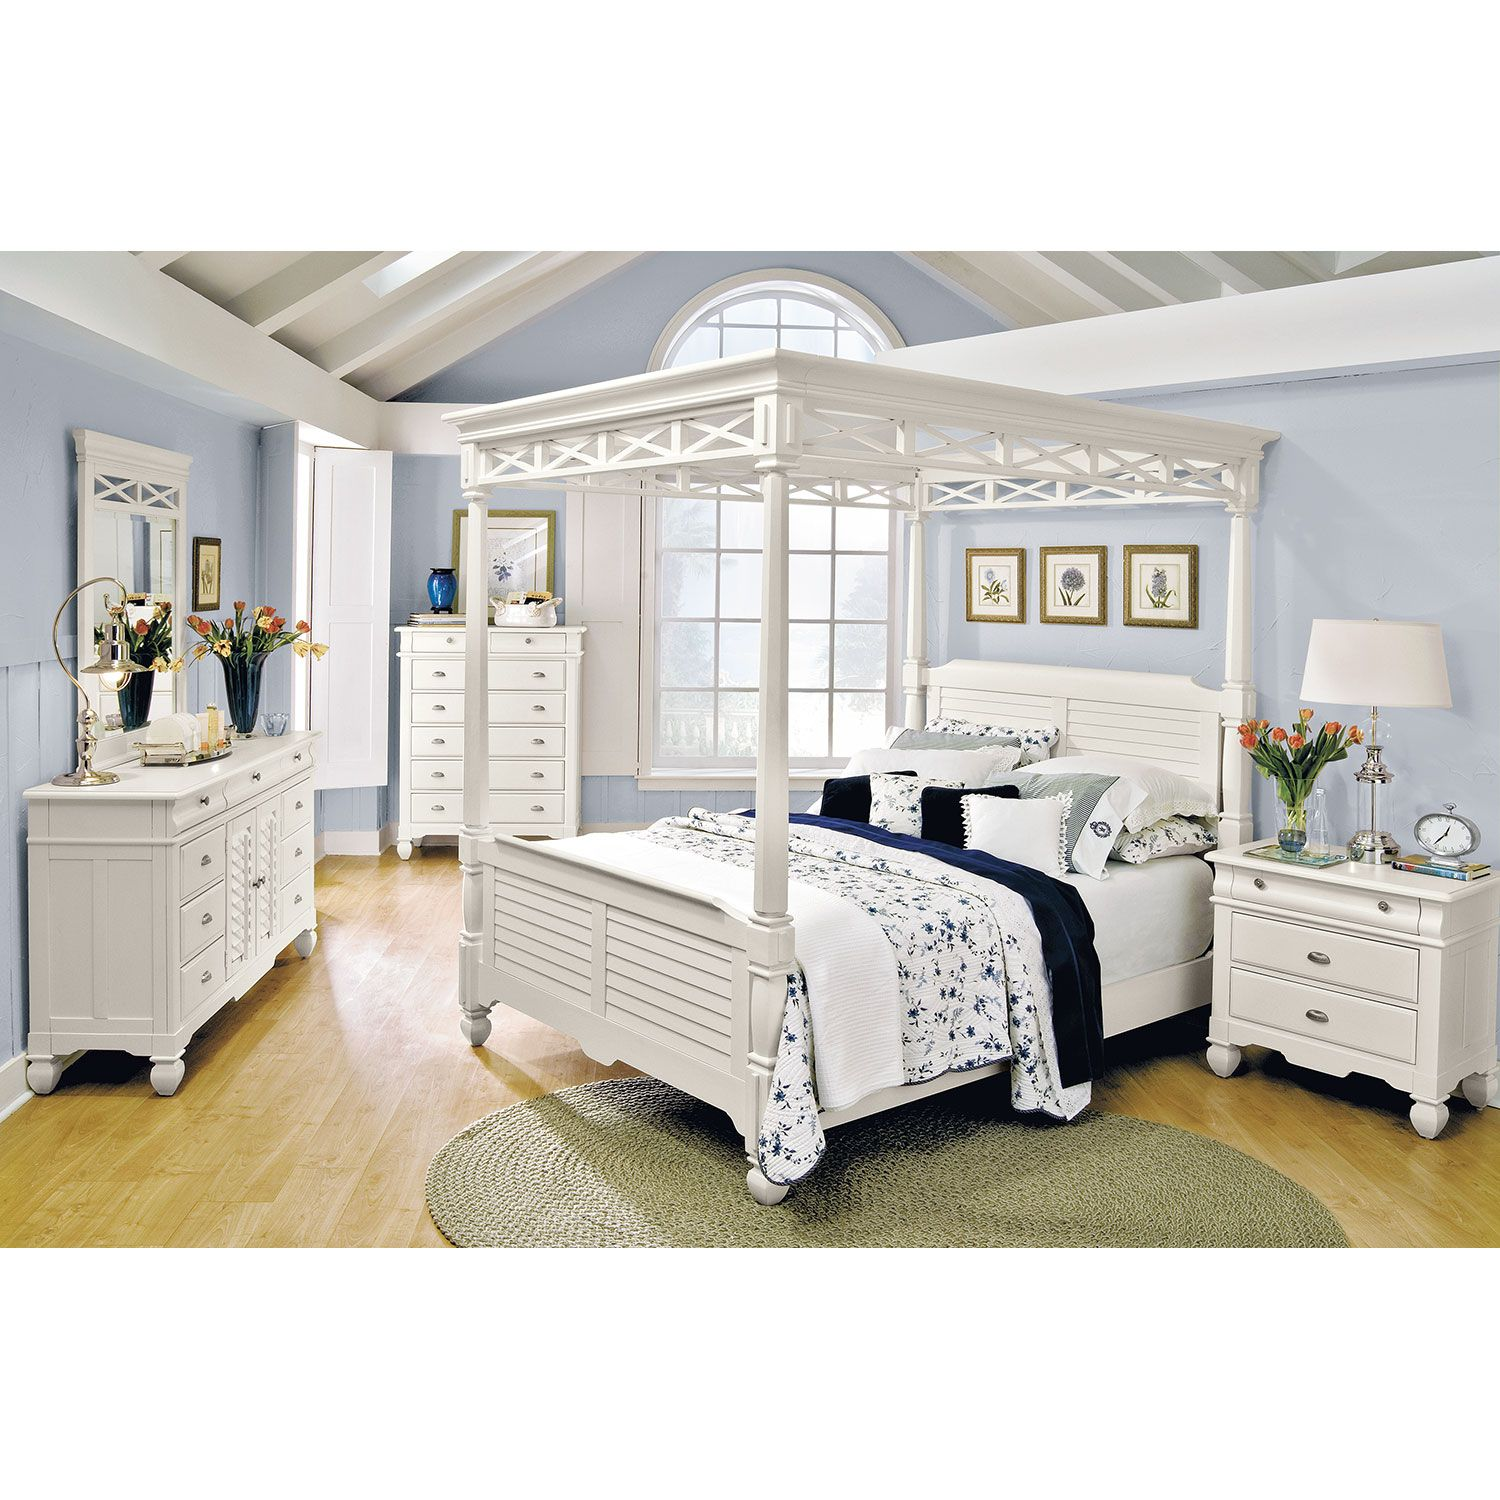 coveted choice. our plantation cove white canopy collection is fresh